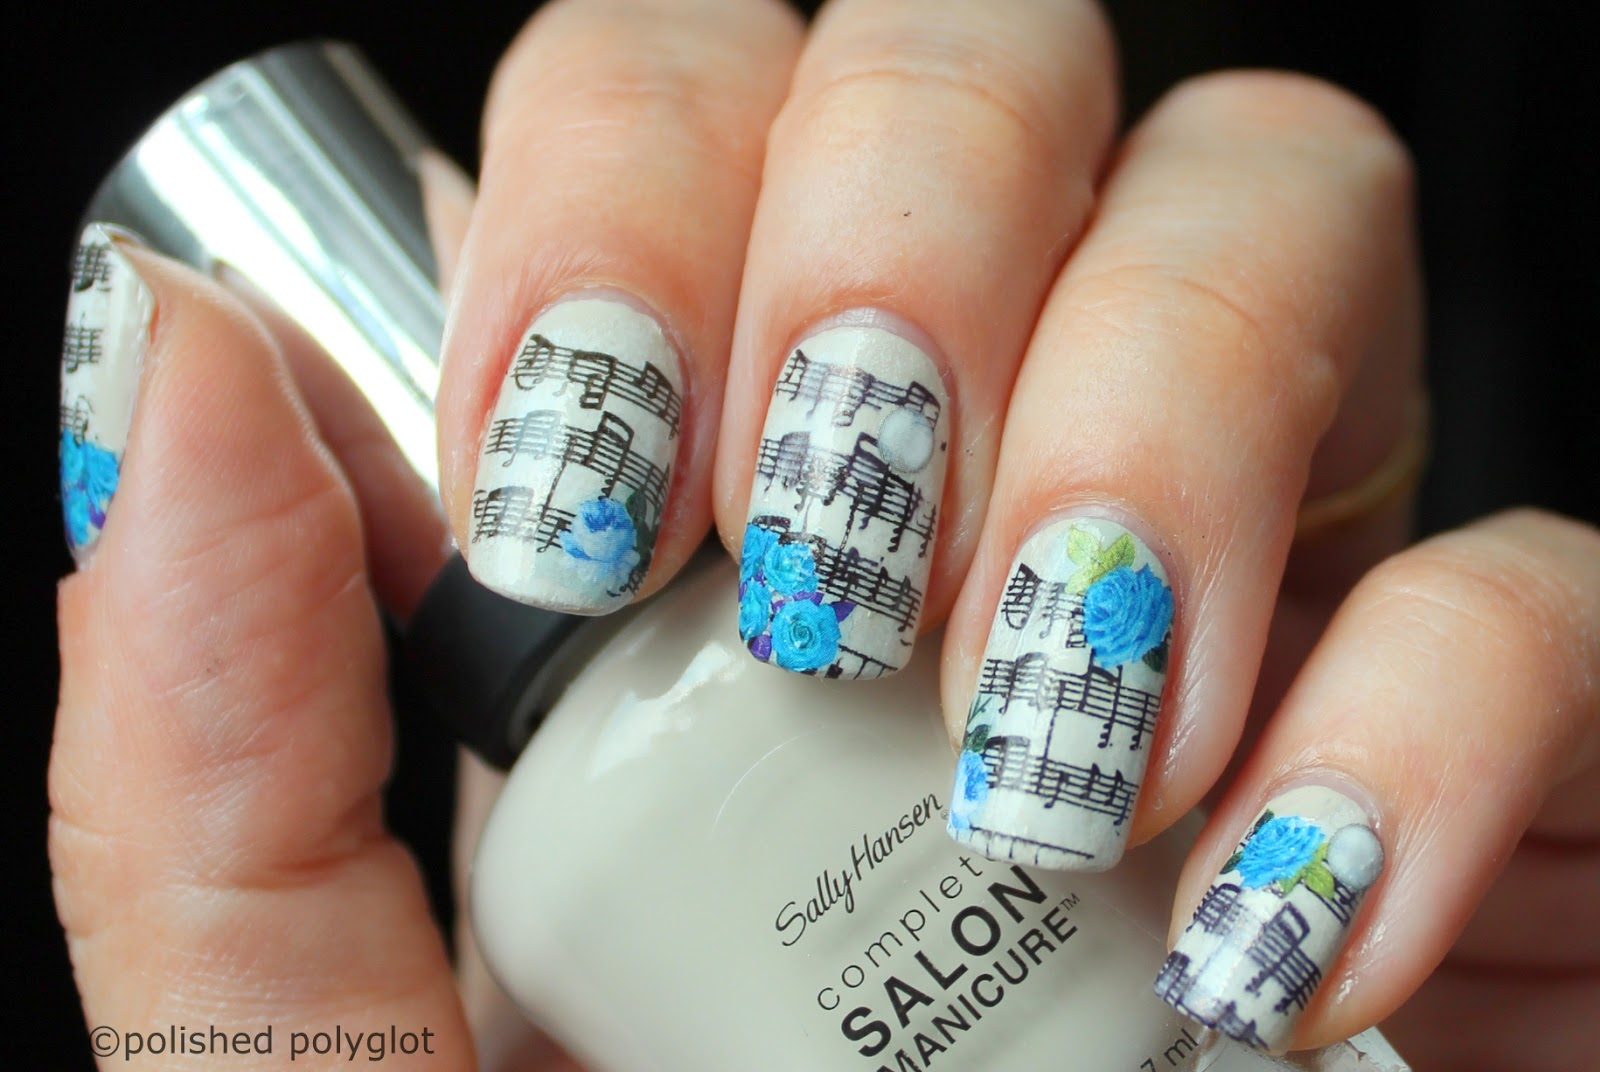 Nail Art Ideas » Nail Art With Music Notes - Pictures of Nail Art ...